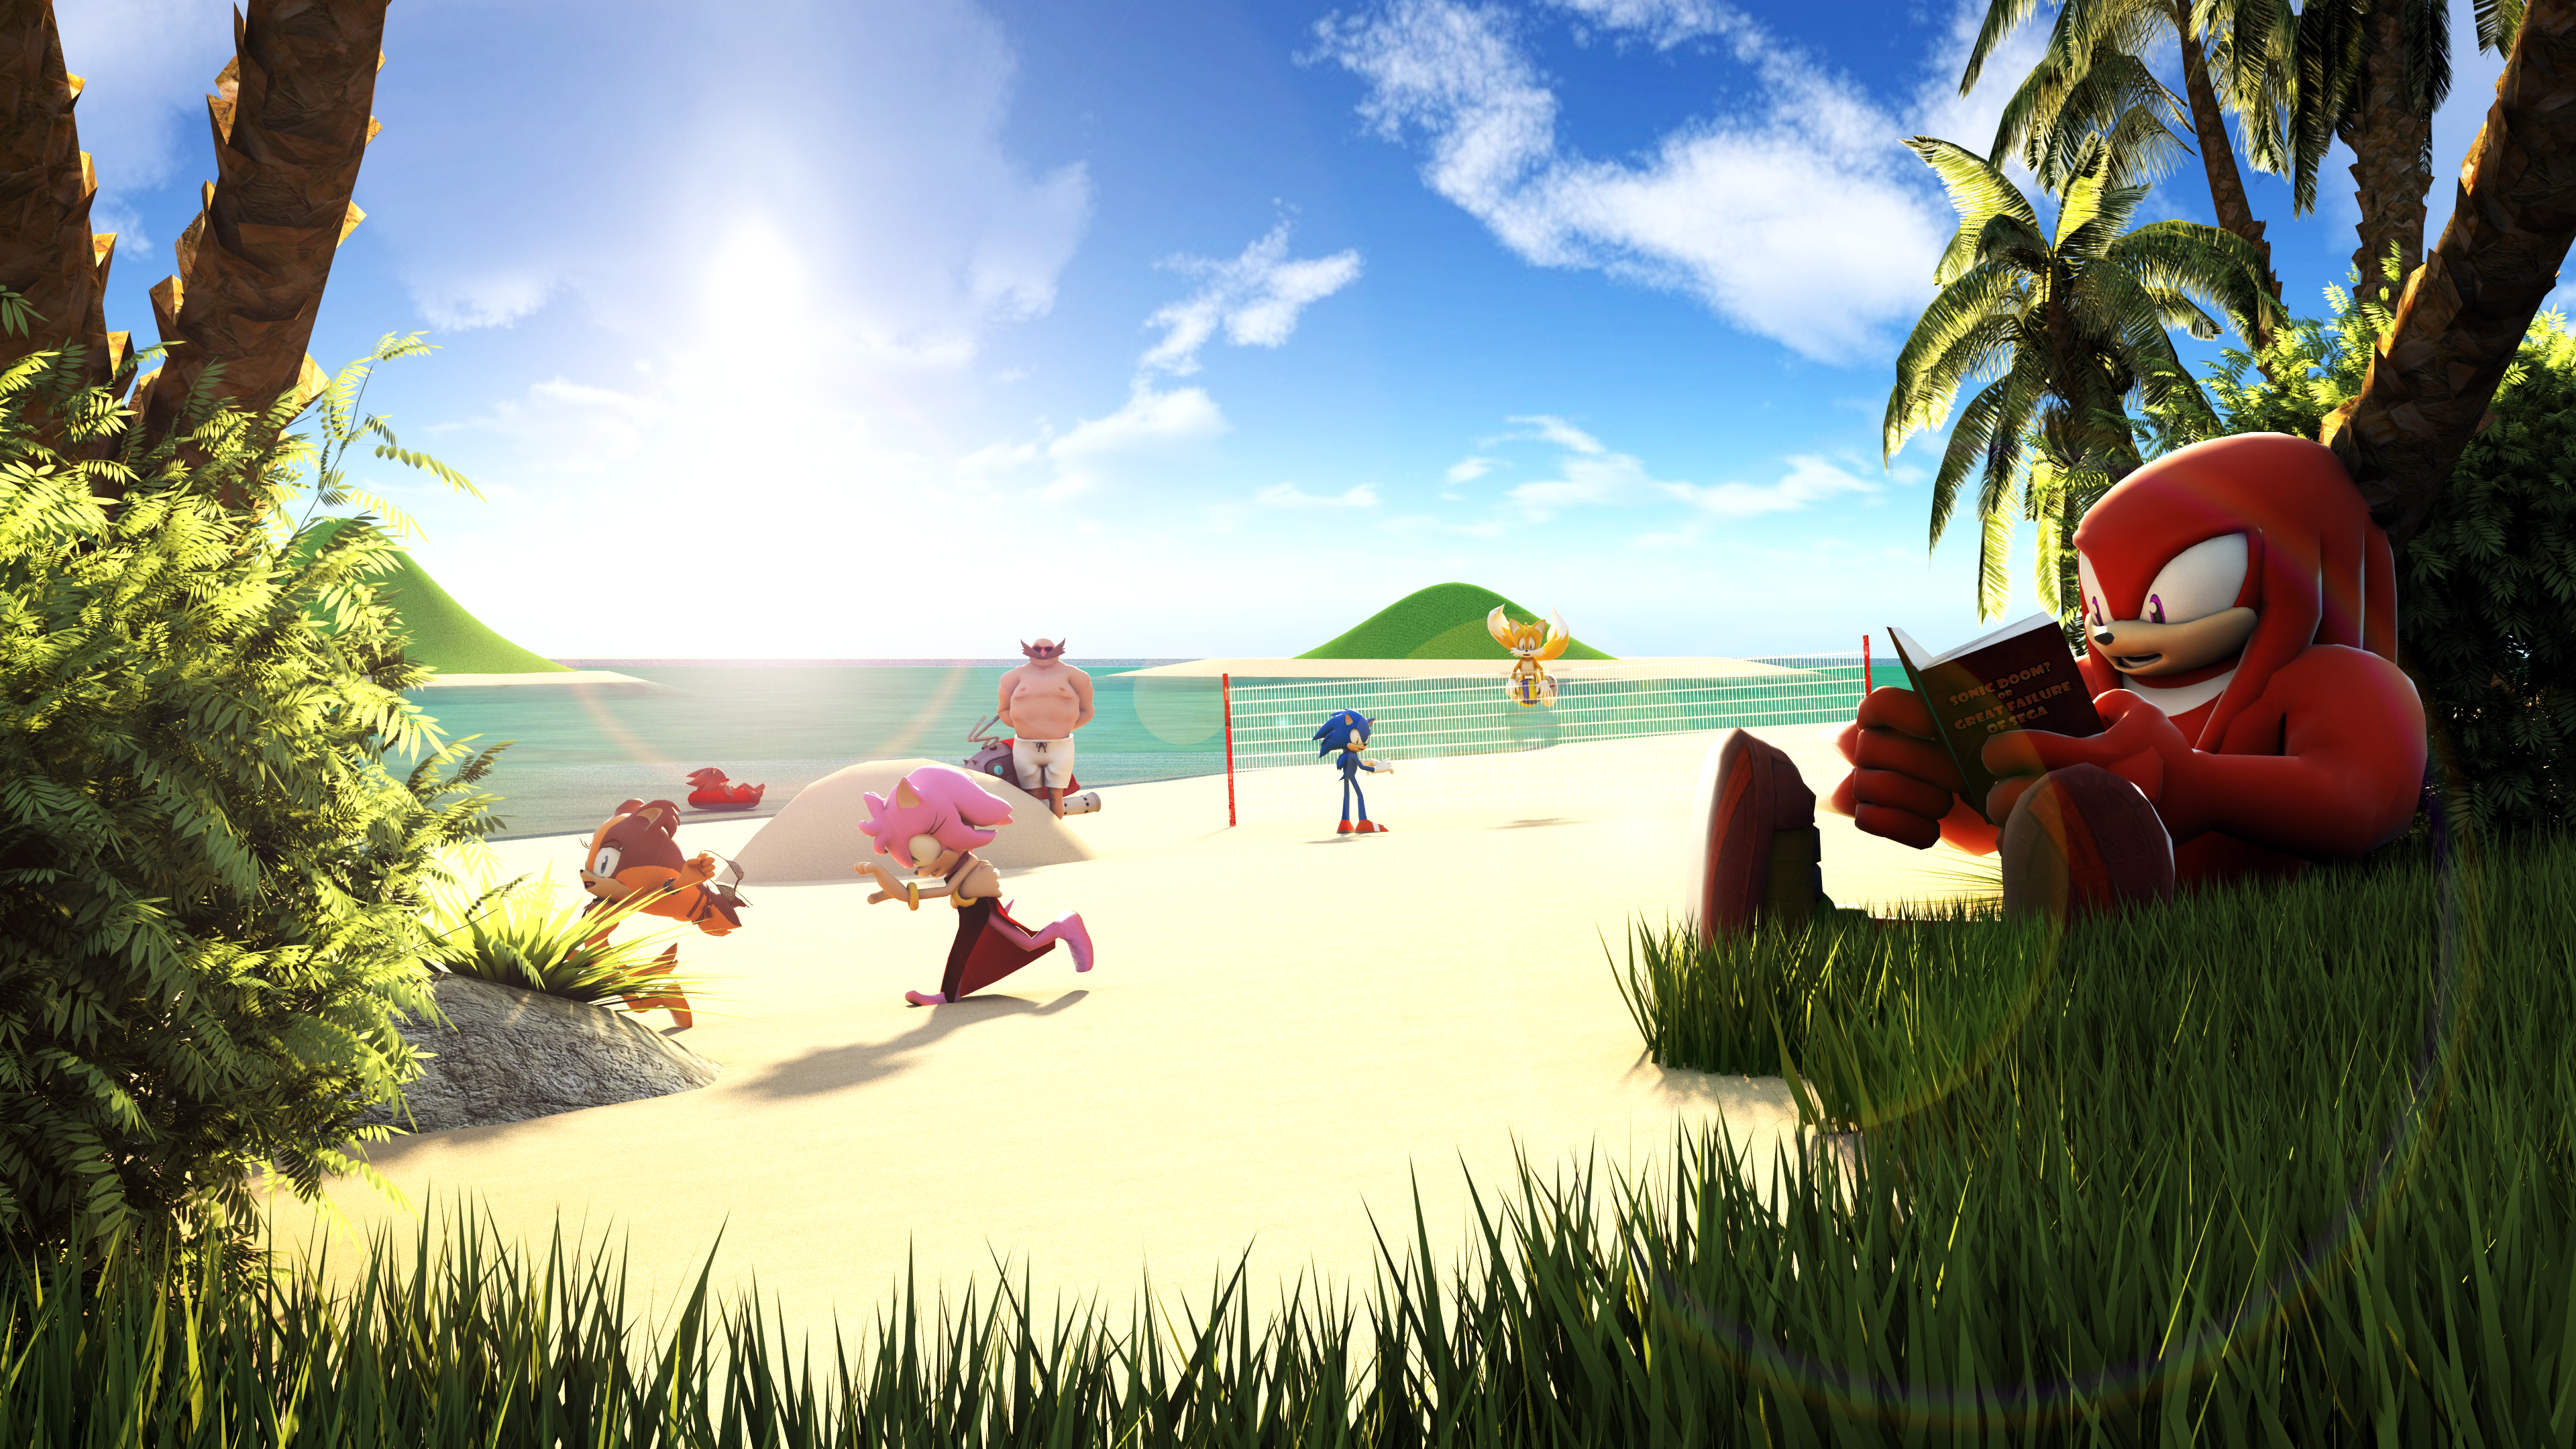 on_the_beach_by_jackydik-daclk2d.png